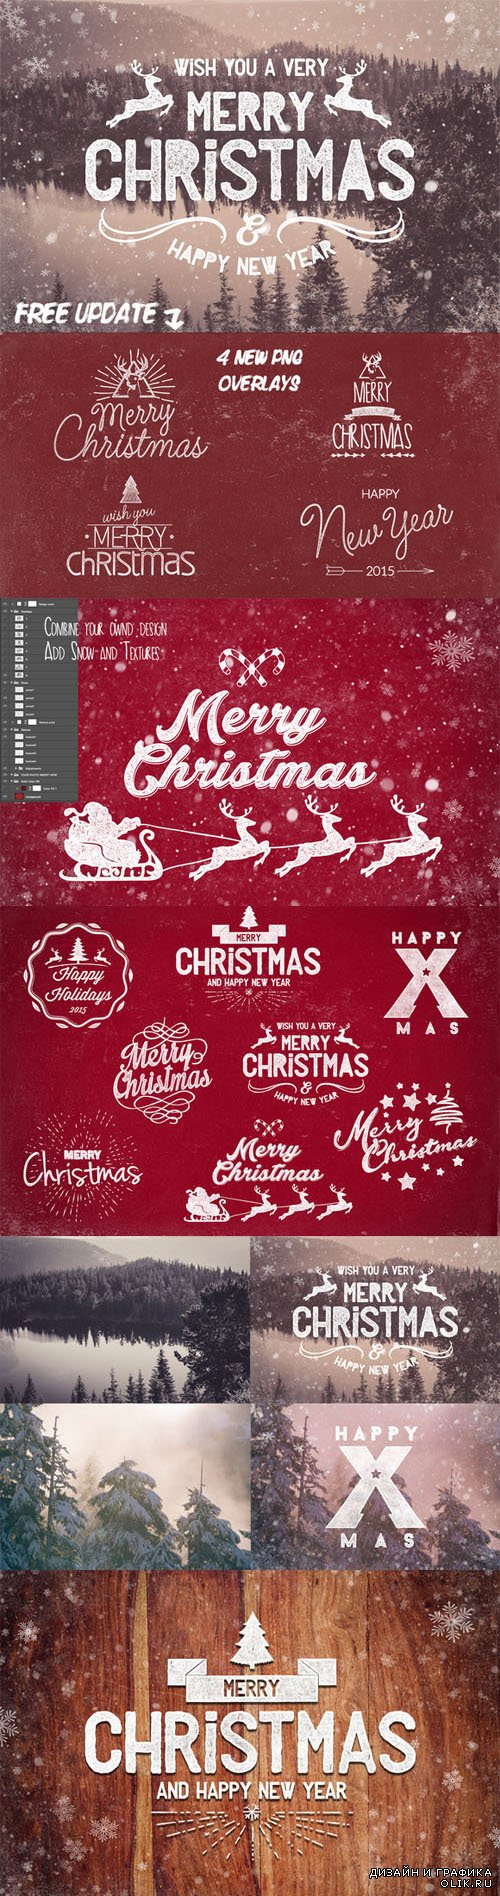 Christmas Photo Overlays - Creativemarket 125383